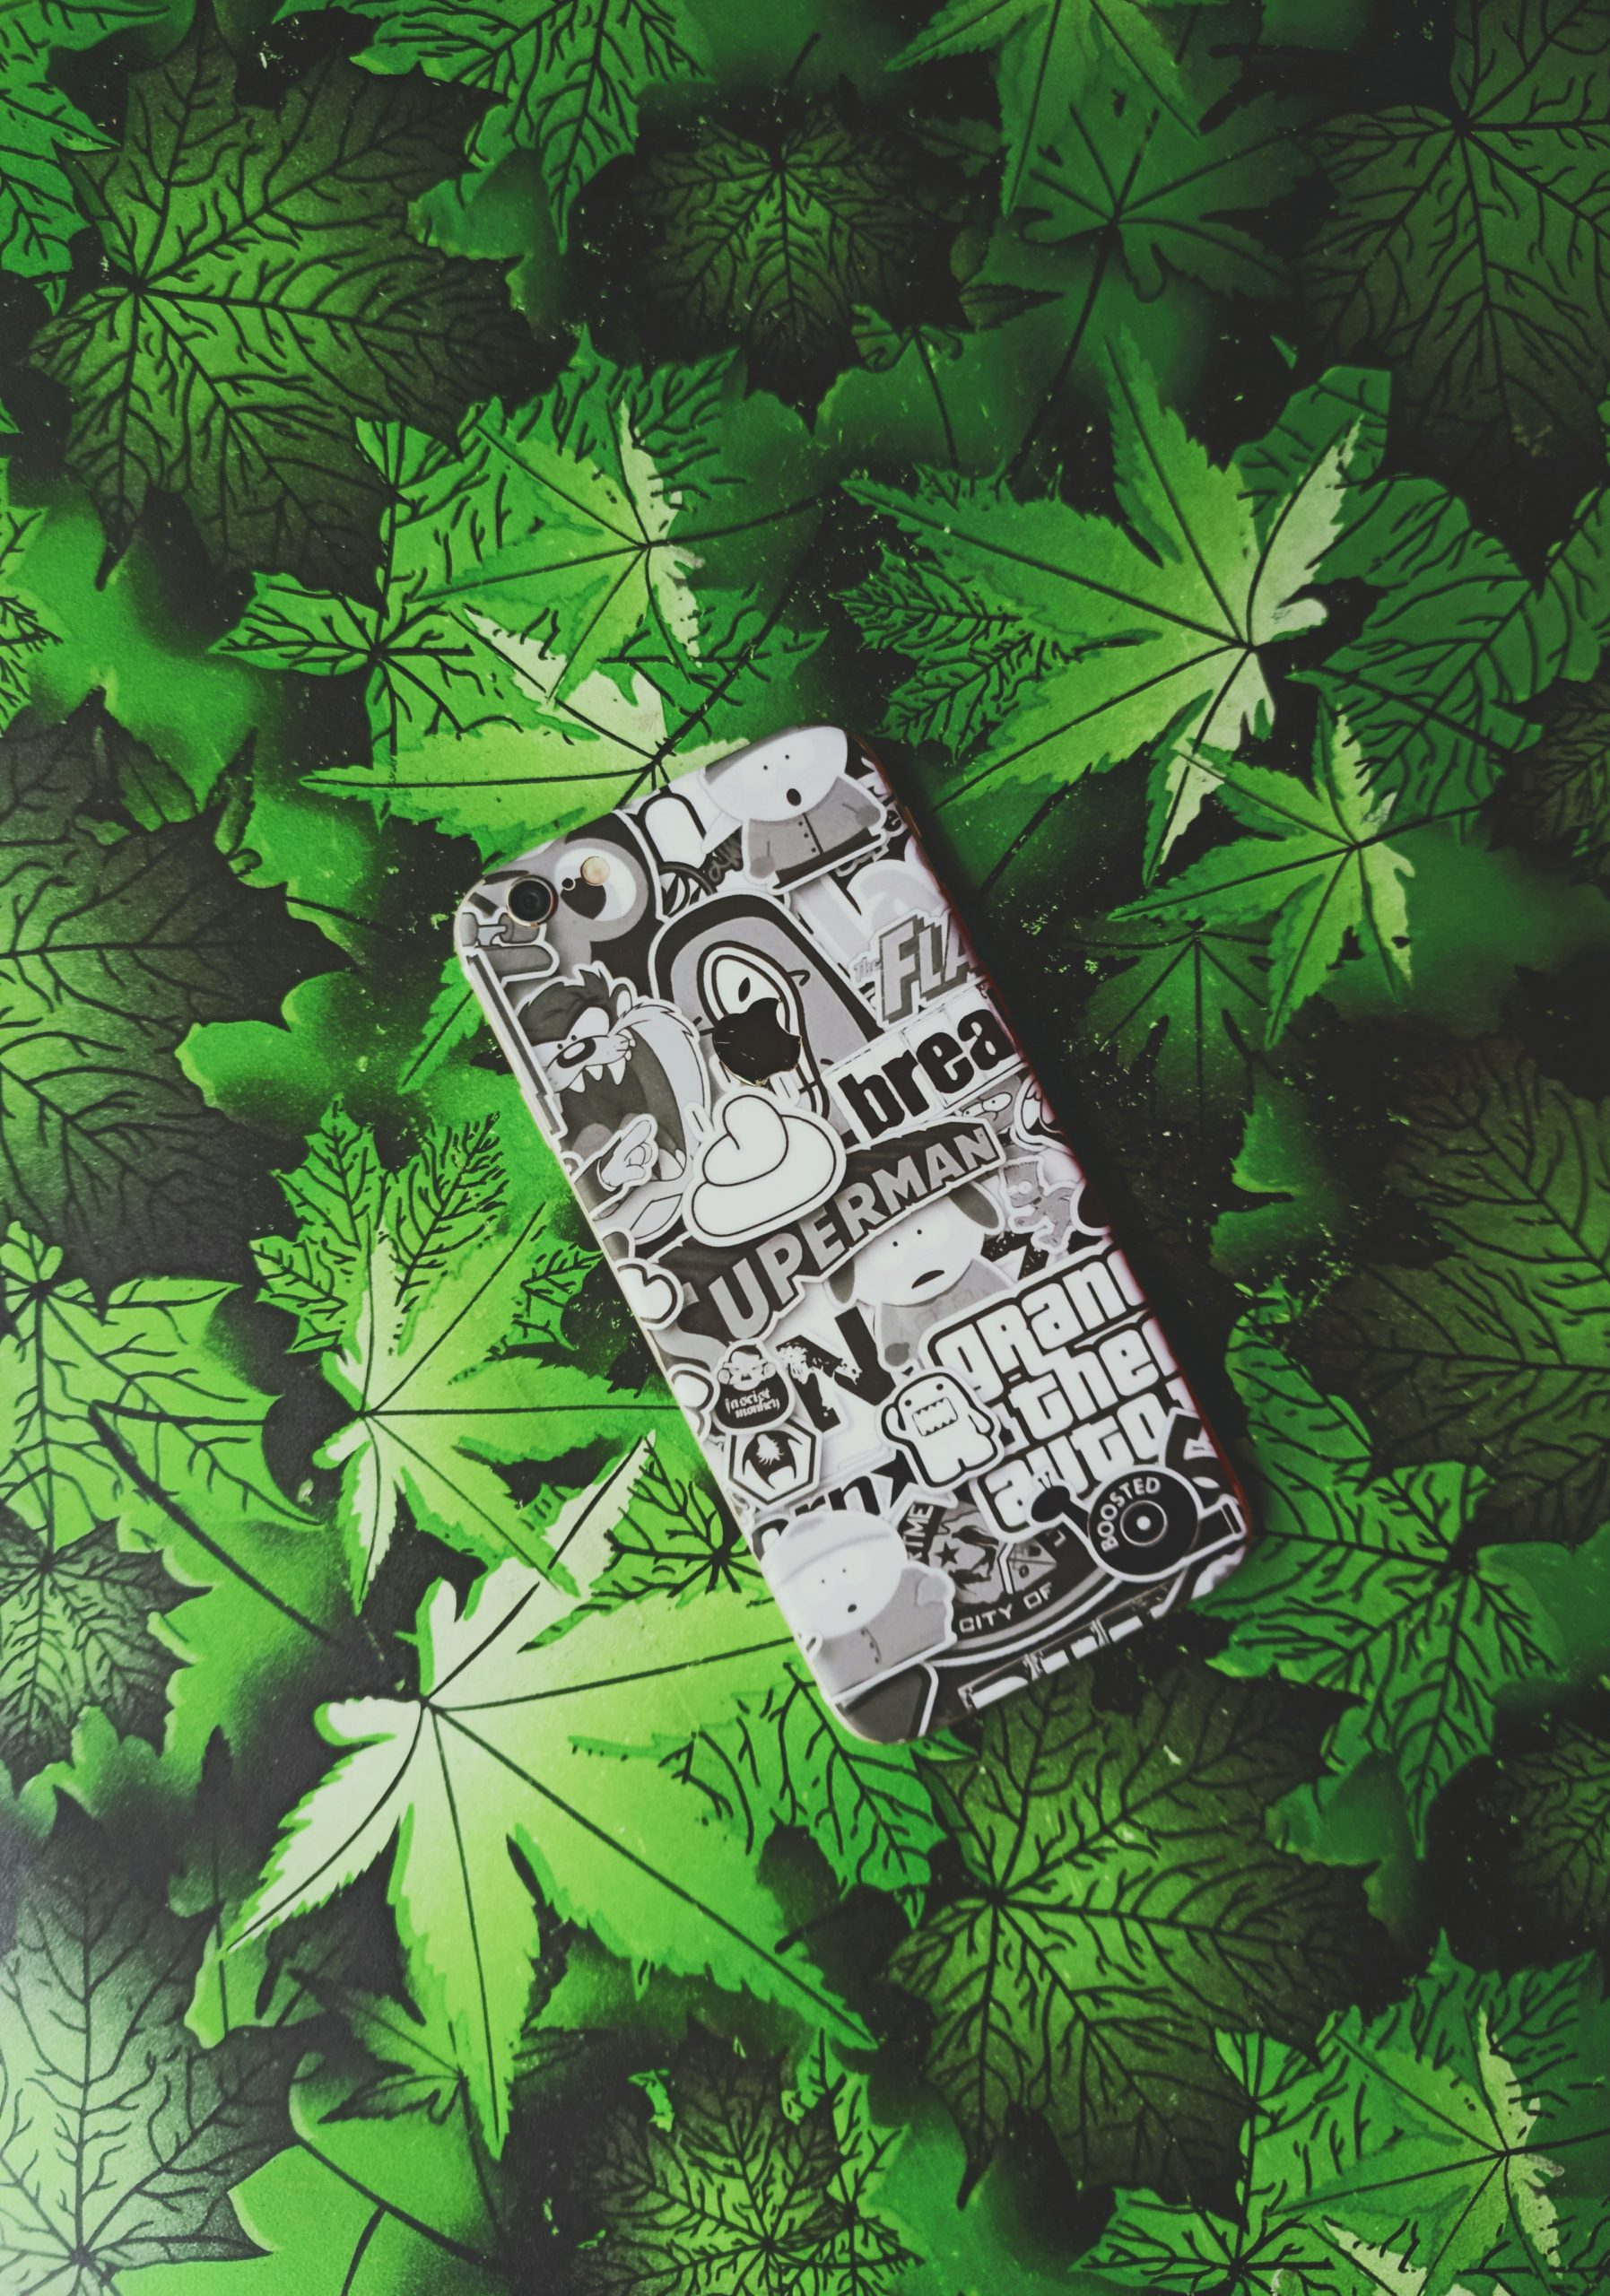 I phone with green background